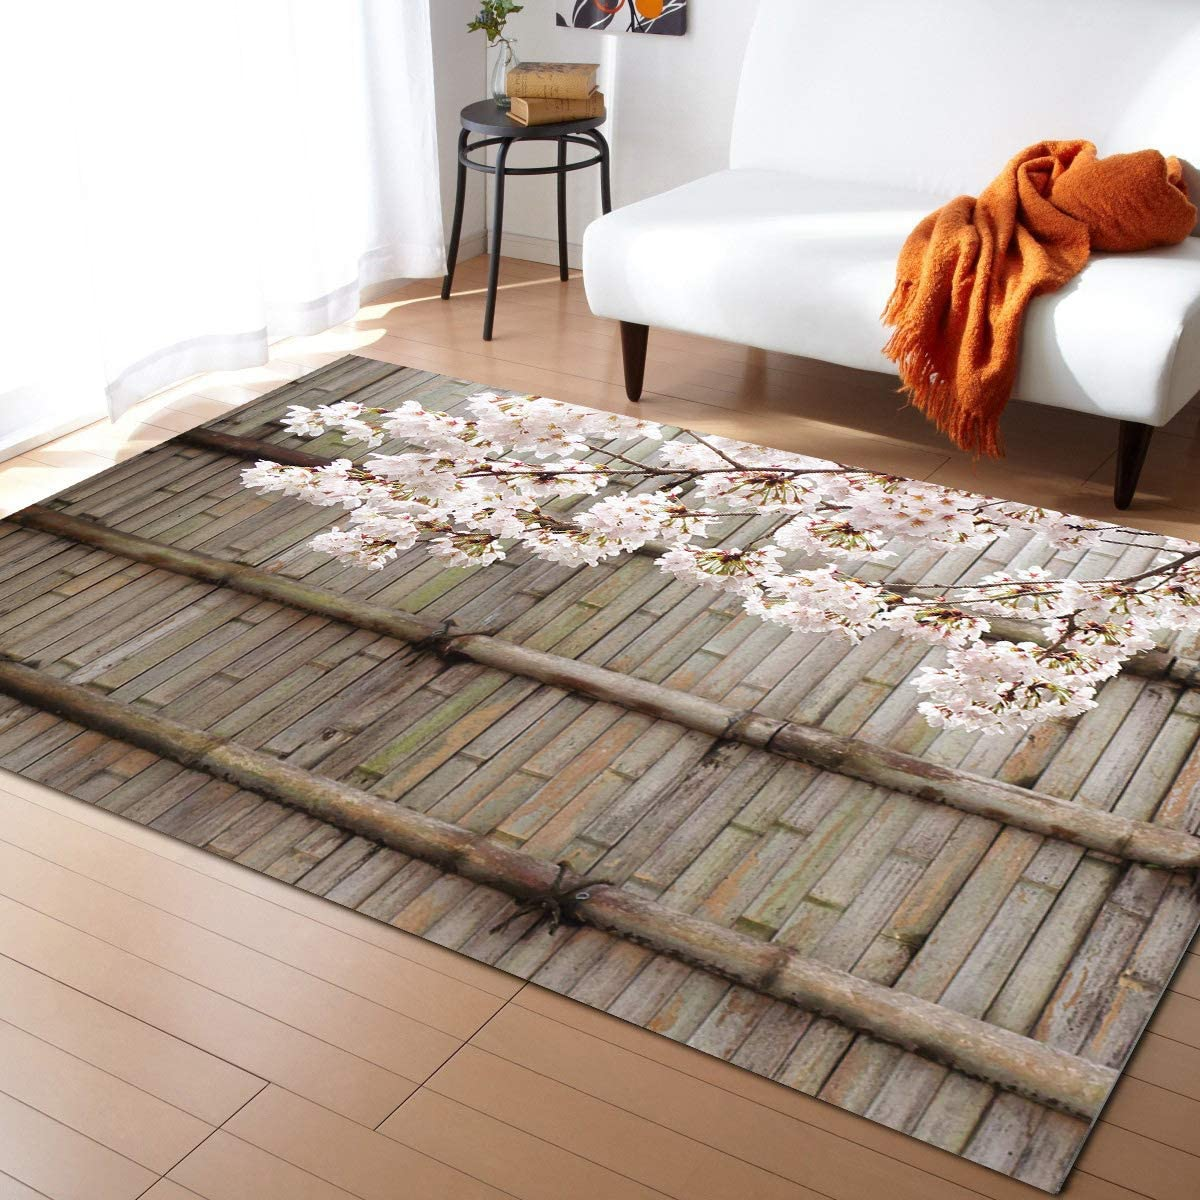 MuswannaA Area Rug for Bedroom Sakura Romantic Living Financial sales sale Leis Room- Al sold out.